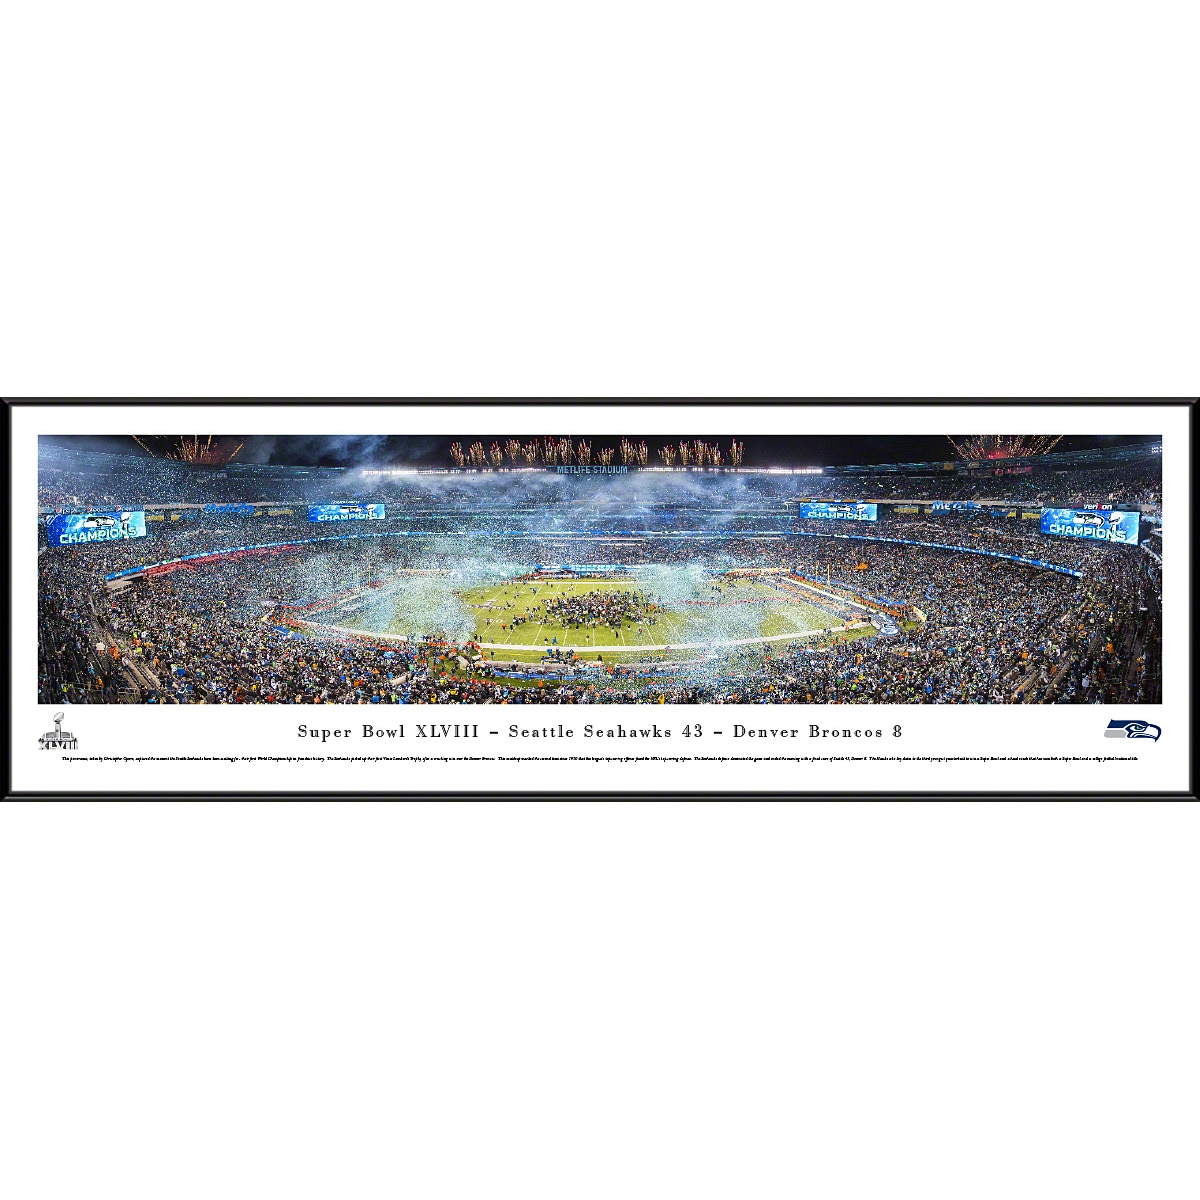 "Seattle Seahawks 40.25"" x 13.75"" Super Bowl XLVIII Champions Celebration Standard Framed Panoramic Photo"